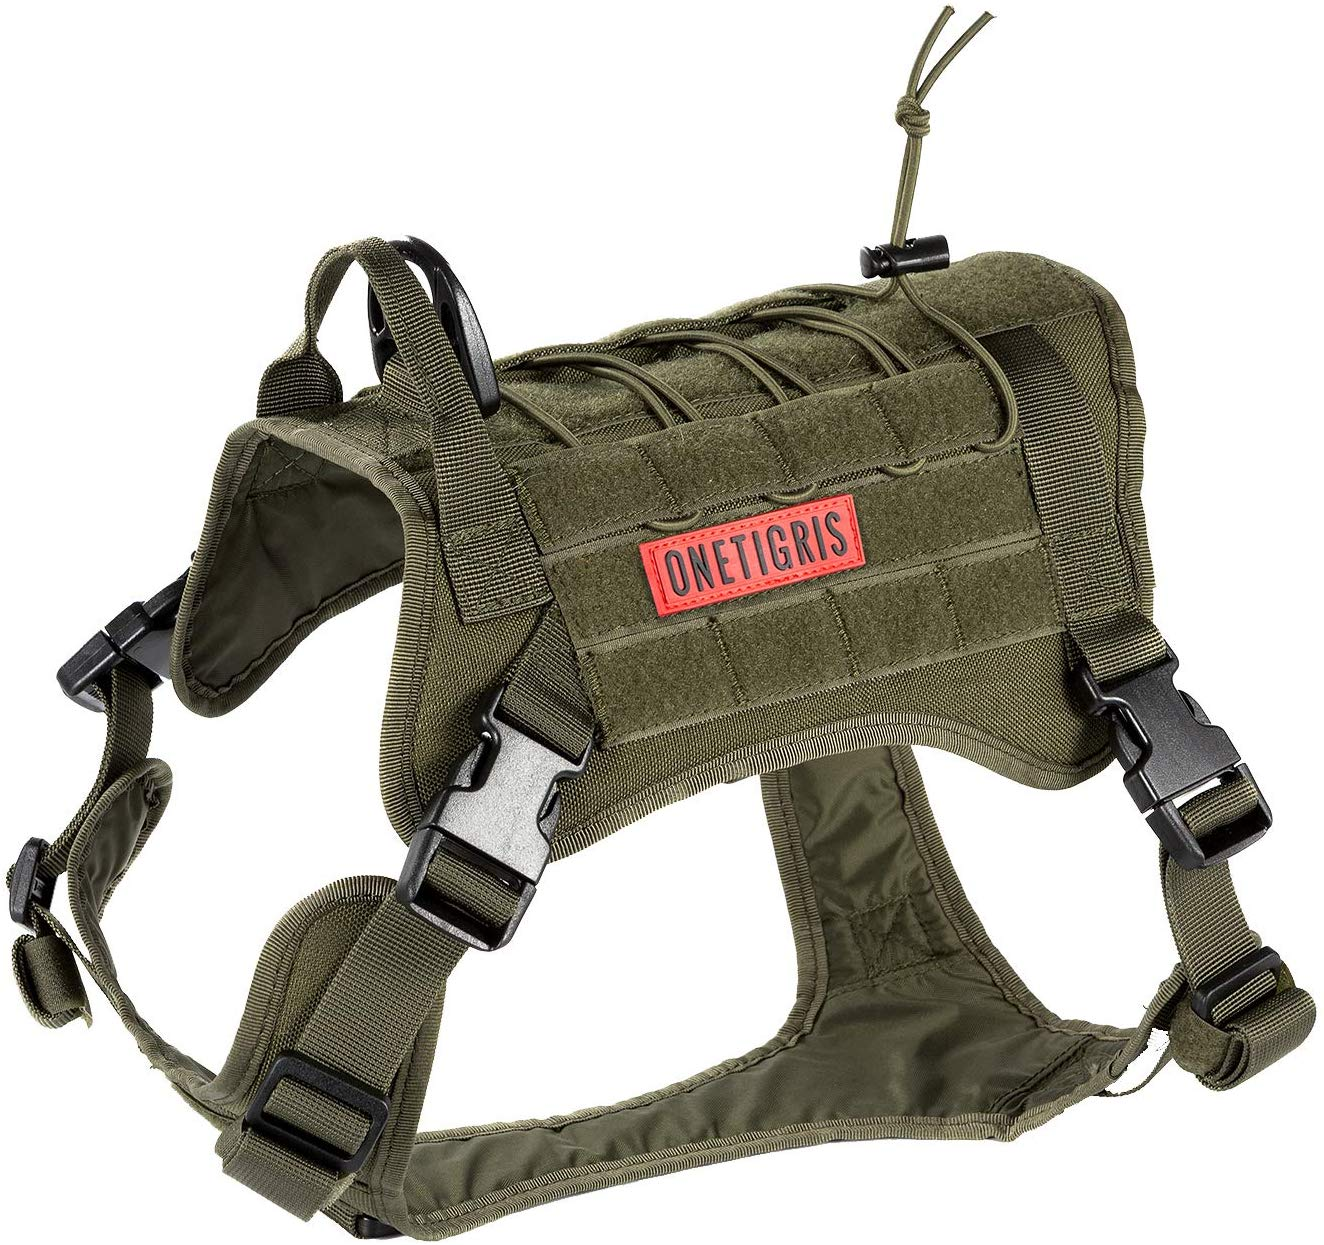 onetigris best tactical harness